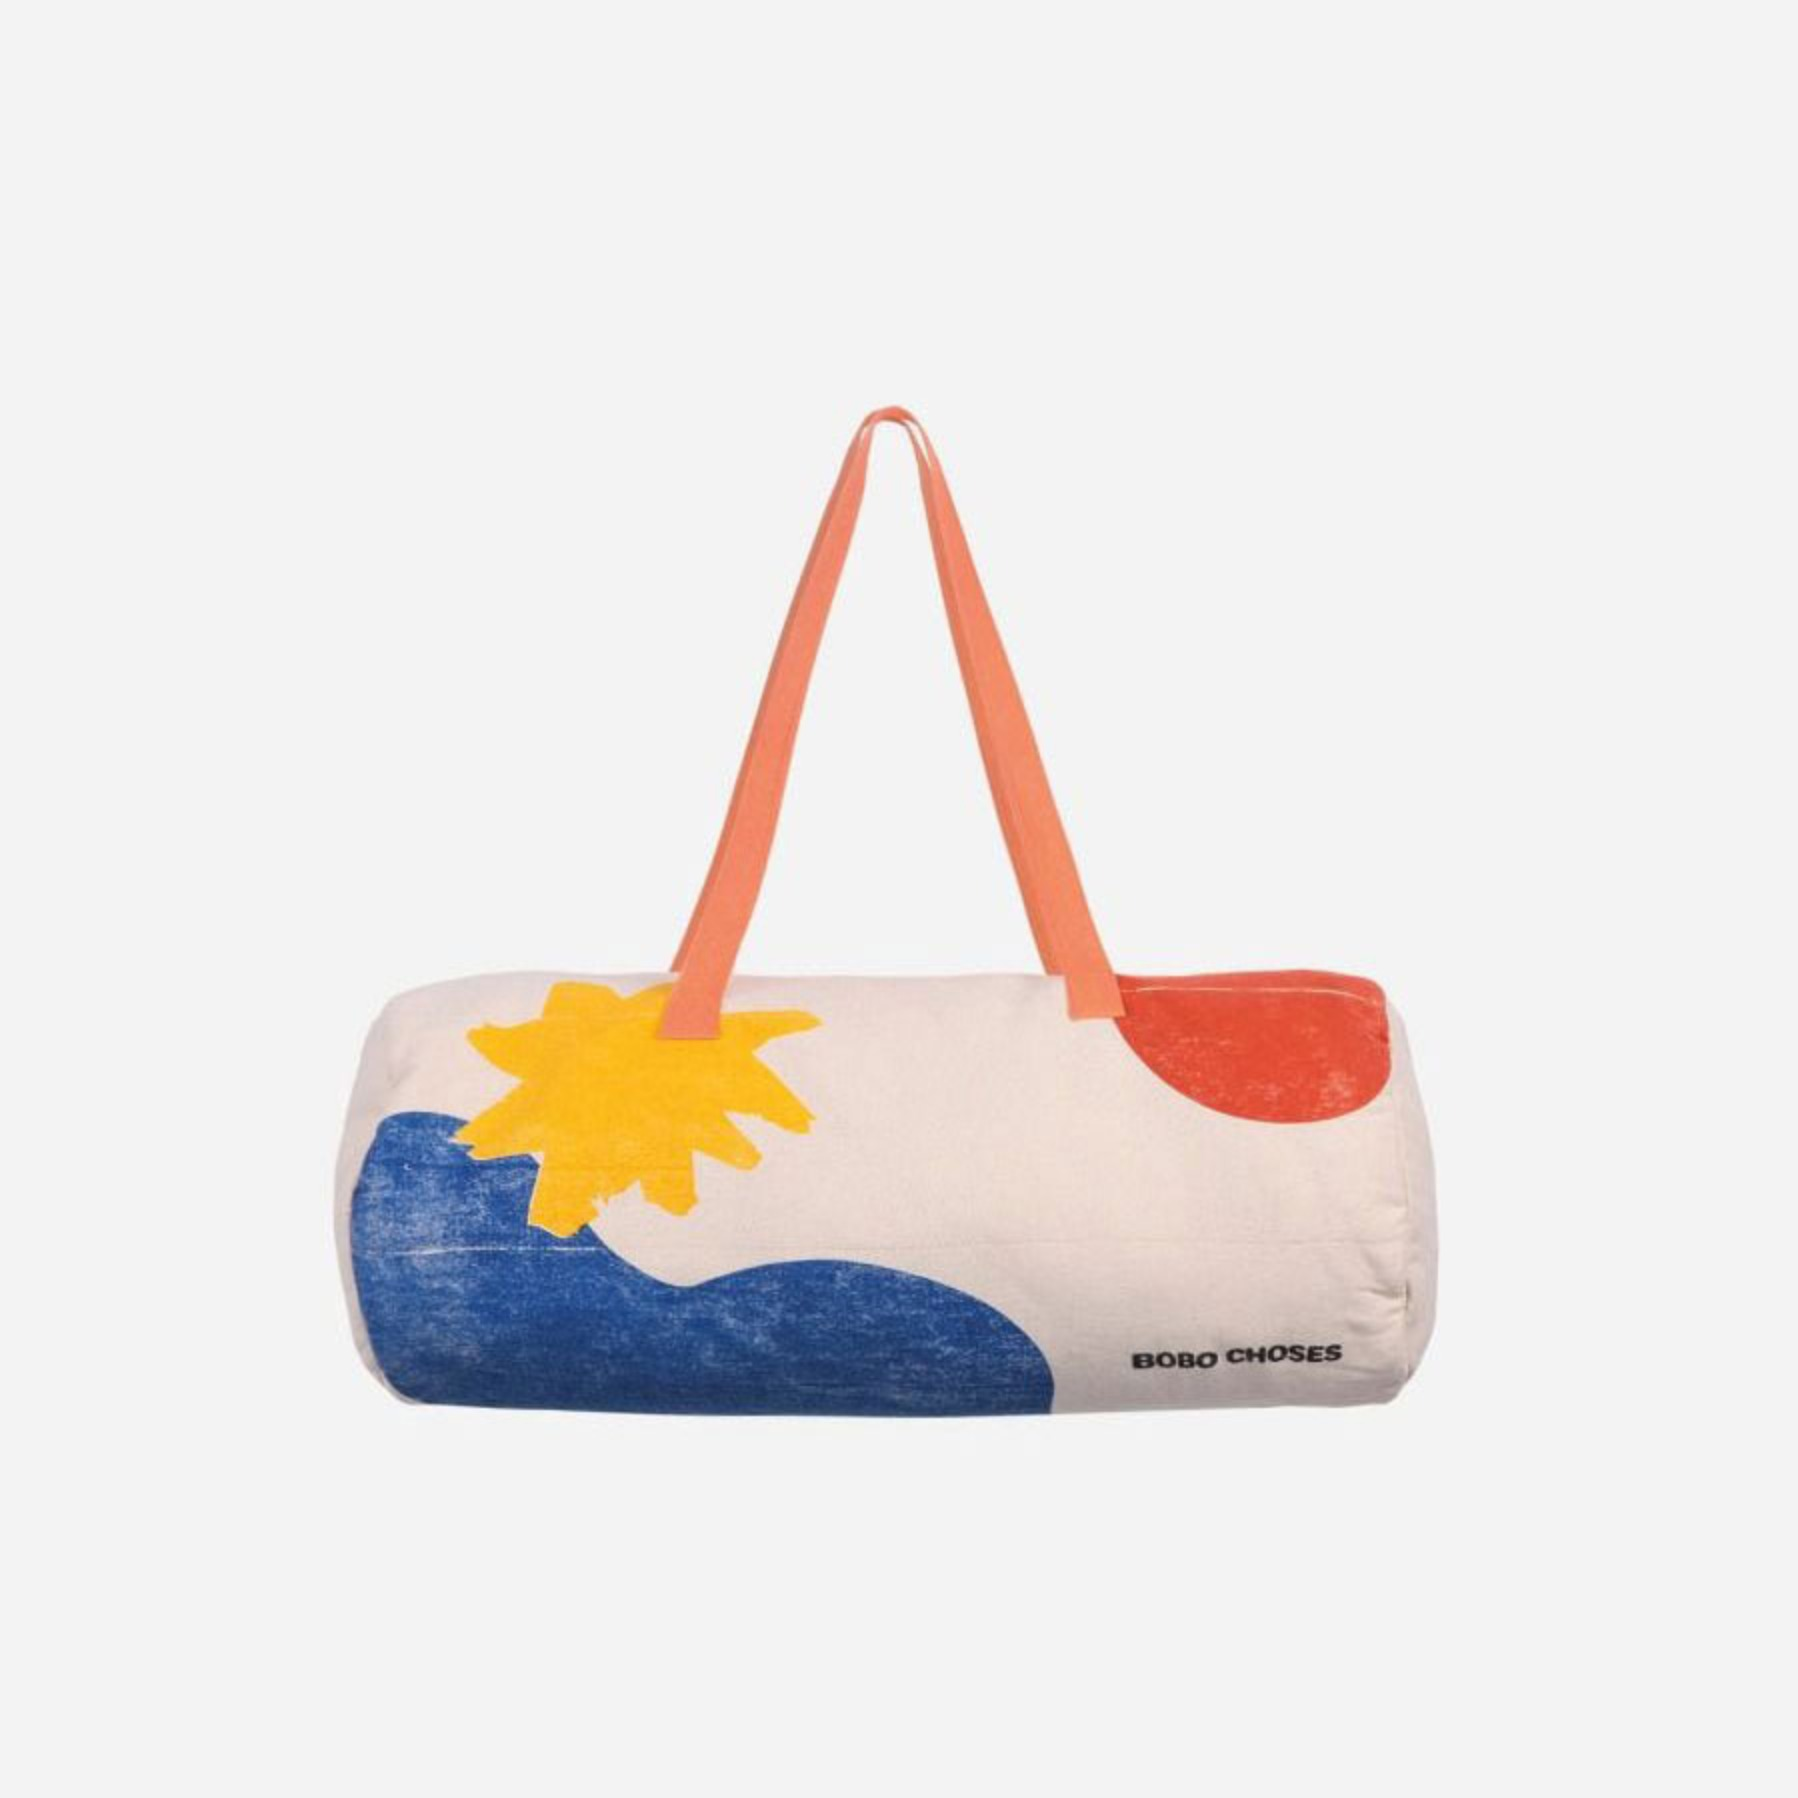 Bobo Choses - Landscape Sport Bag